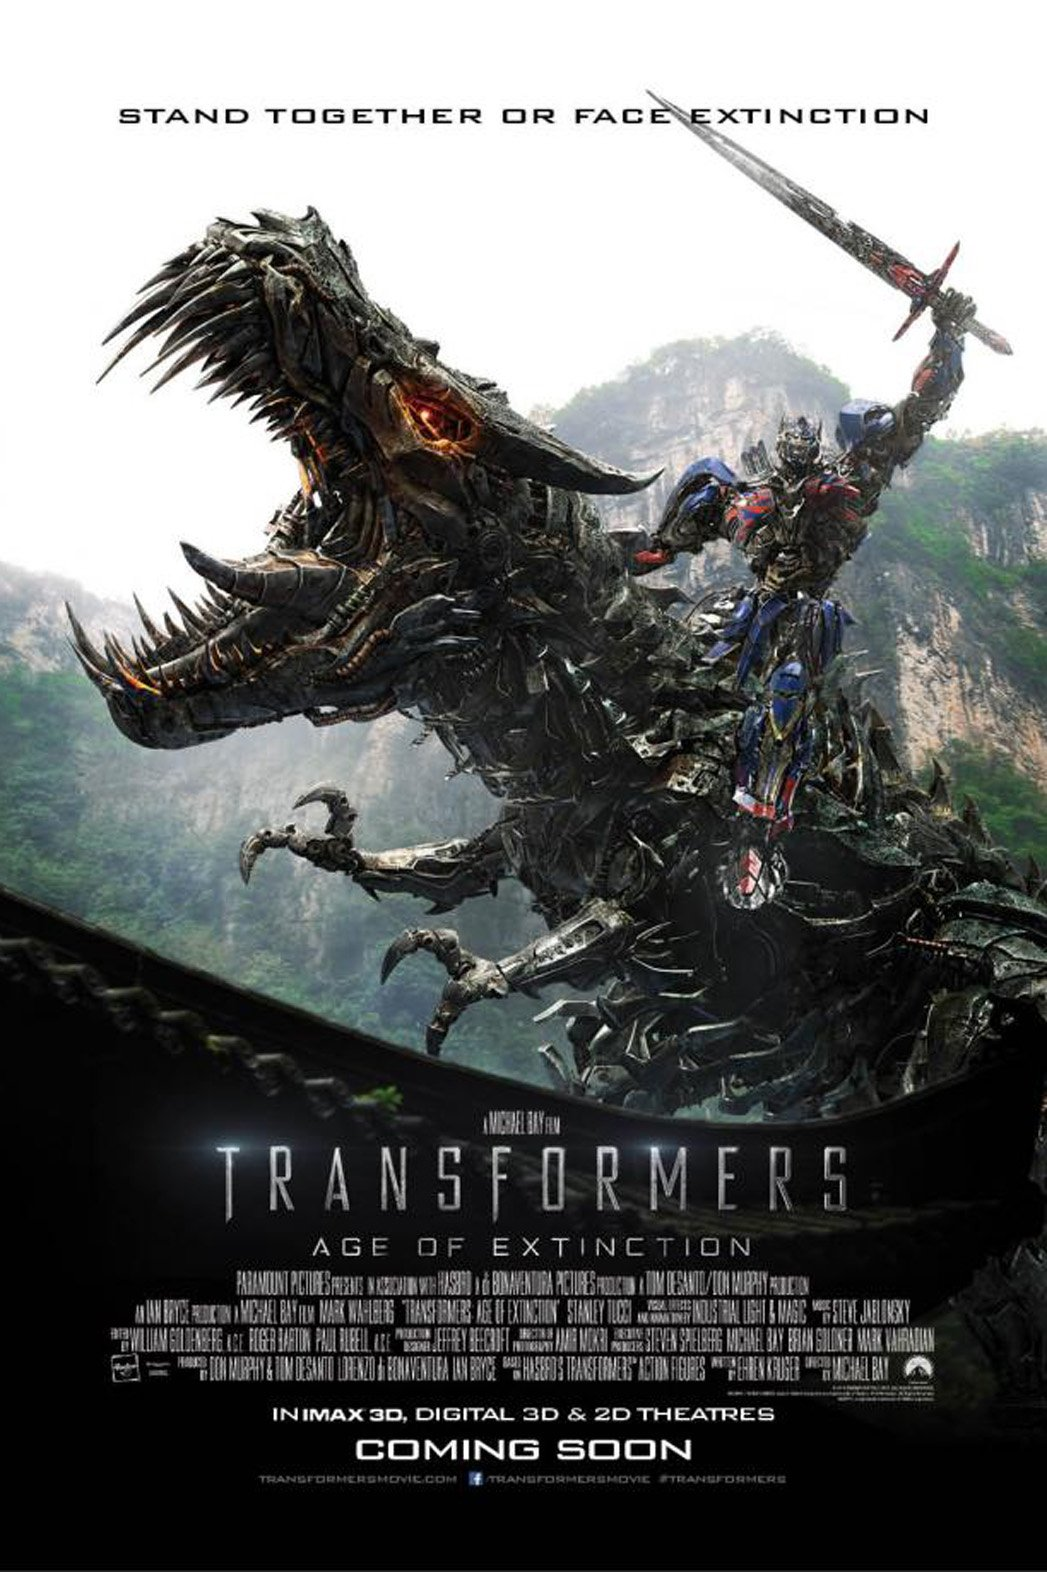 transformers_age_of_extinction_movie_poster.jpg